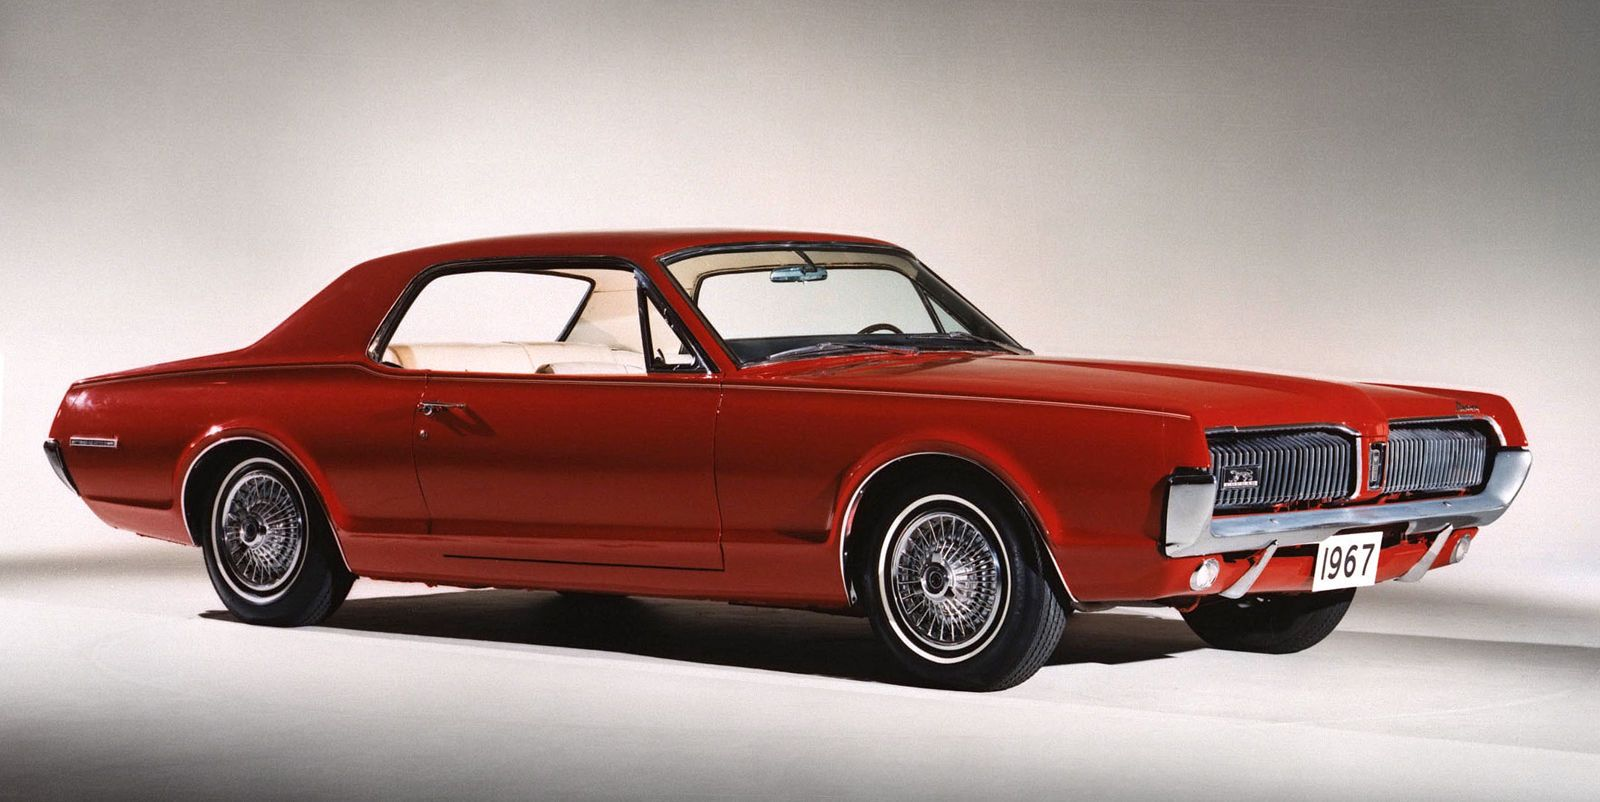 12 Classic Cars That Are Criminally Overlooked Gems | Affordable ...